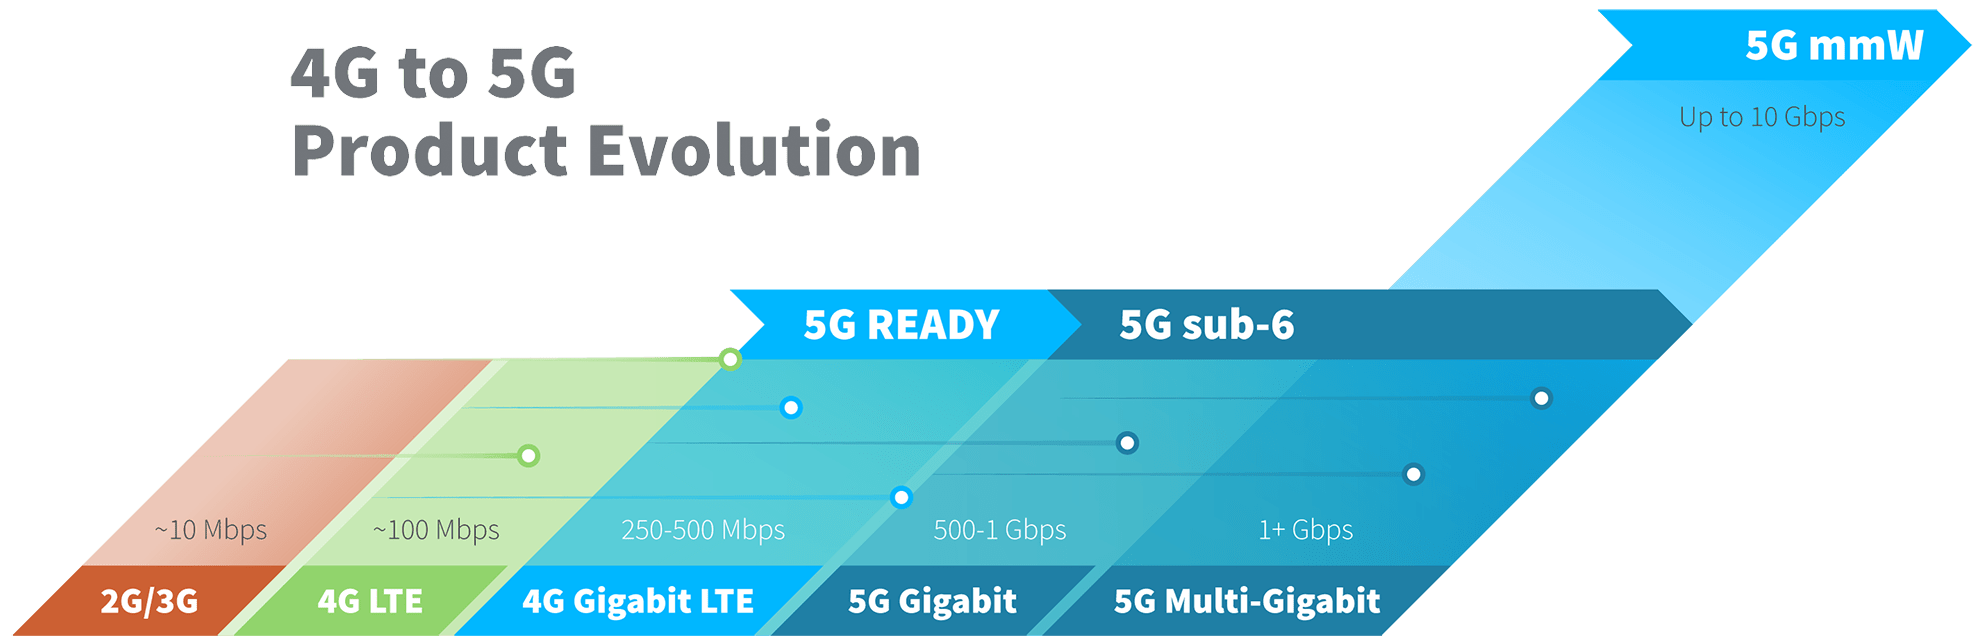 4G to 5G Product Evolution